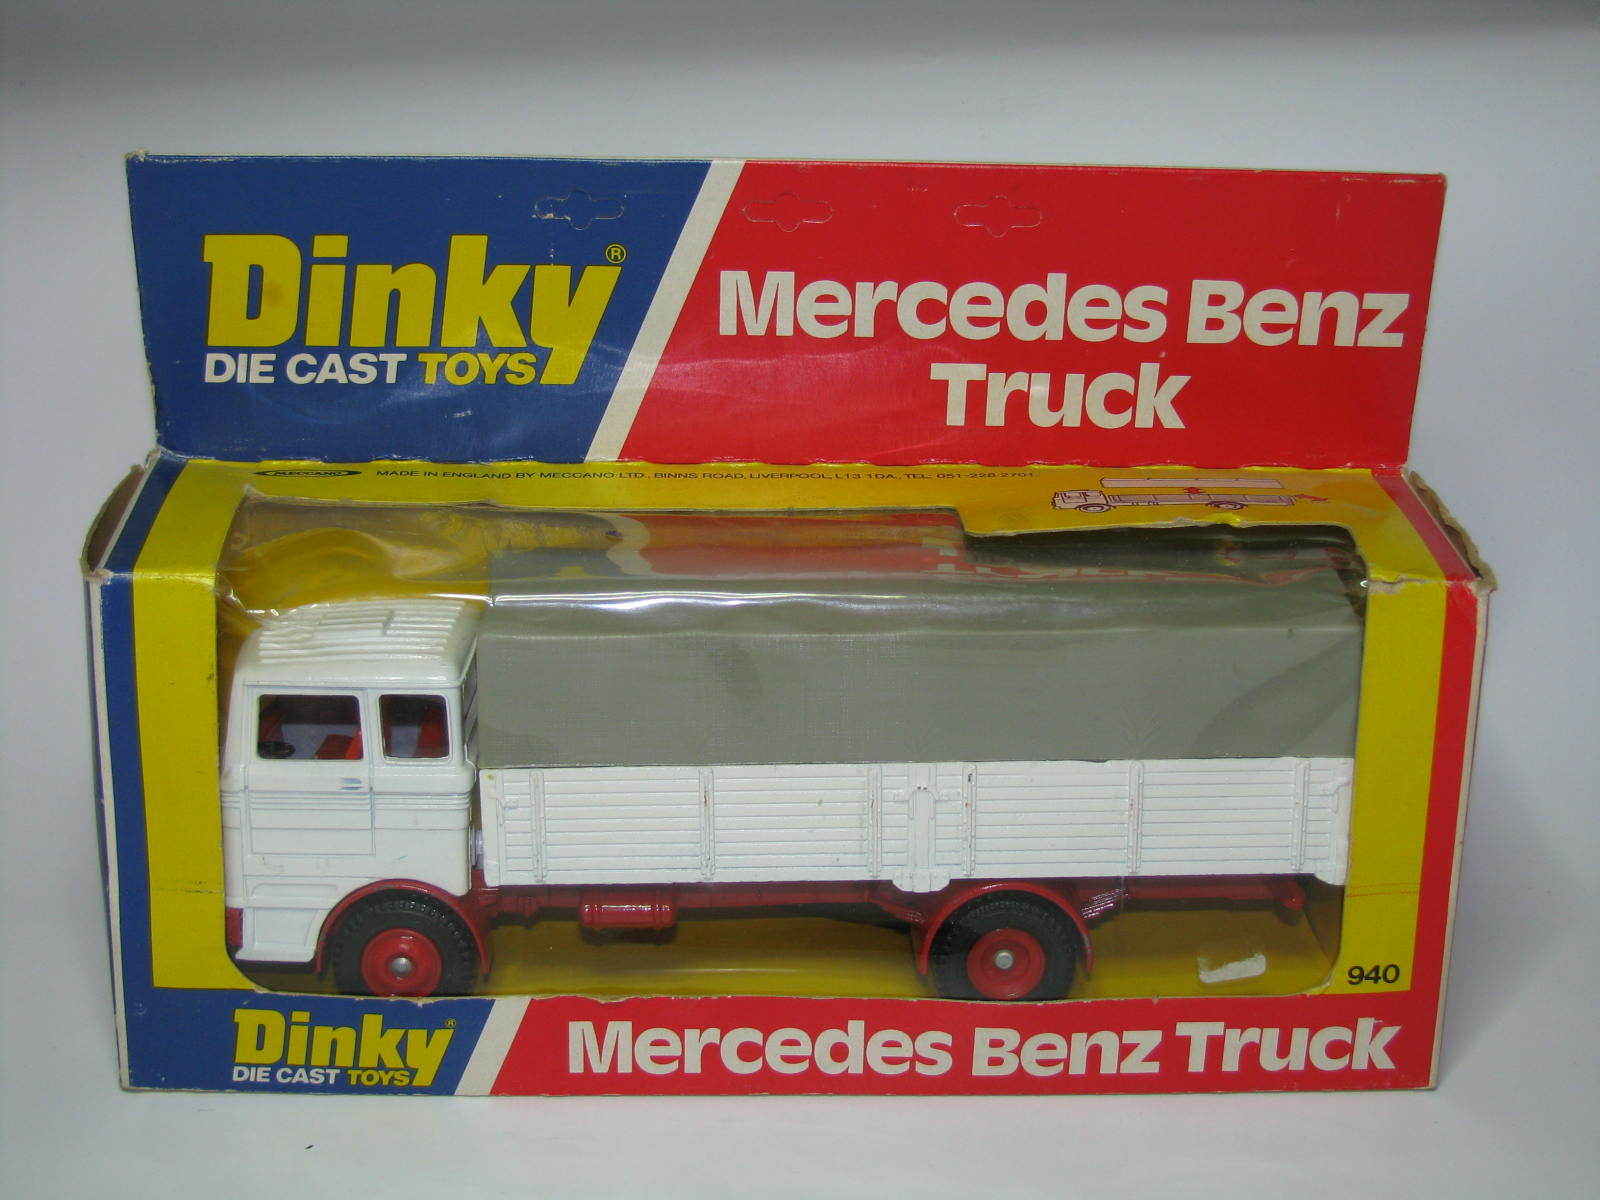 DINKY TOYS N°940 VINTAGE  Mercedes Benz Truck  NMINT COND.+ BOX